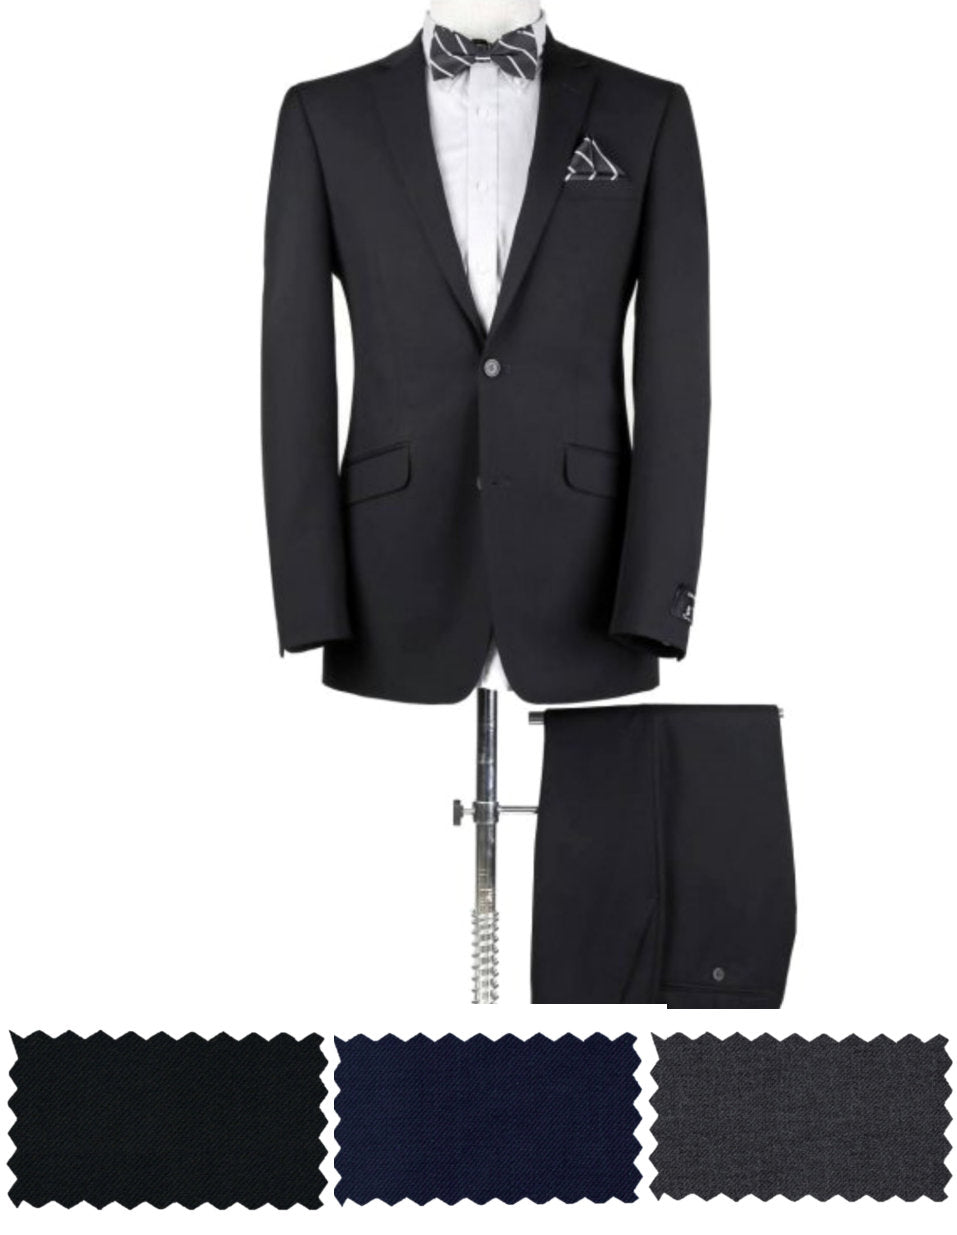 BUILD YOUR PACKAGE: Black, Grey or Blue Suit